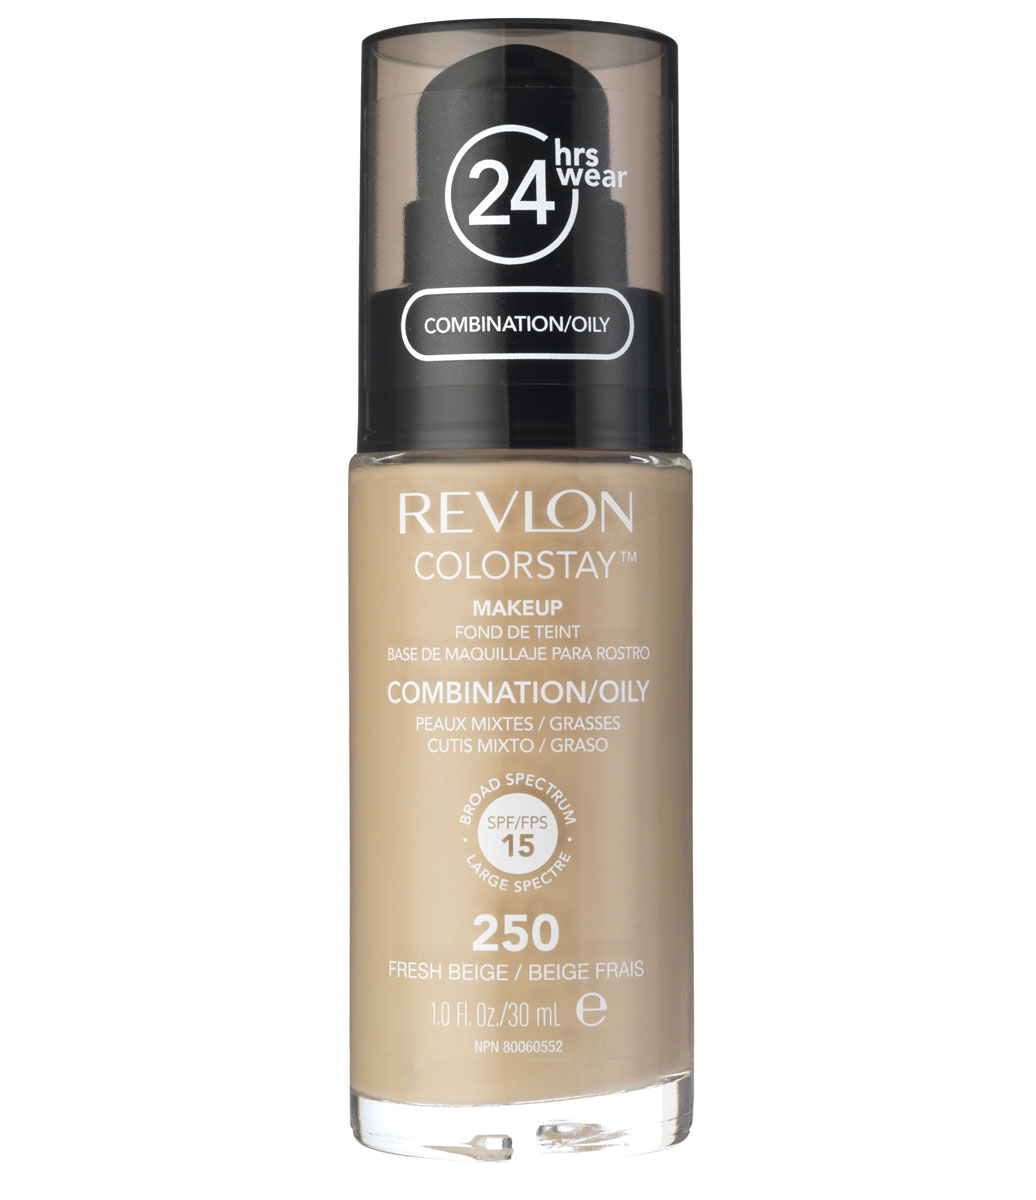 Revlon Тональный Крем для Комб-Жирн Кожи Colorstay Makeup For Combination-Oily Skin Fresh beige 250 30 мл cleansing gel for oily combination skin 150 ml gel for oily skin skin cleansing anti wrinkle gess